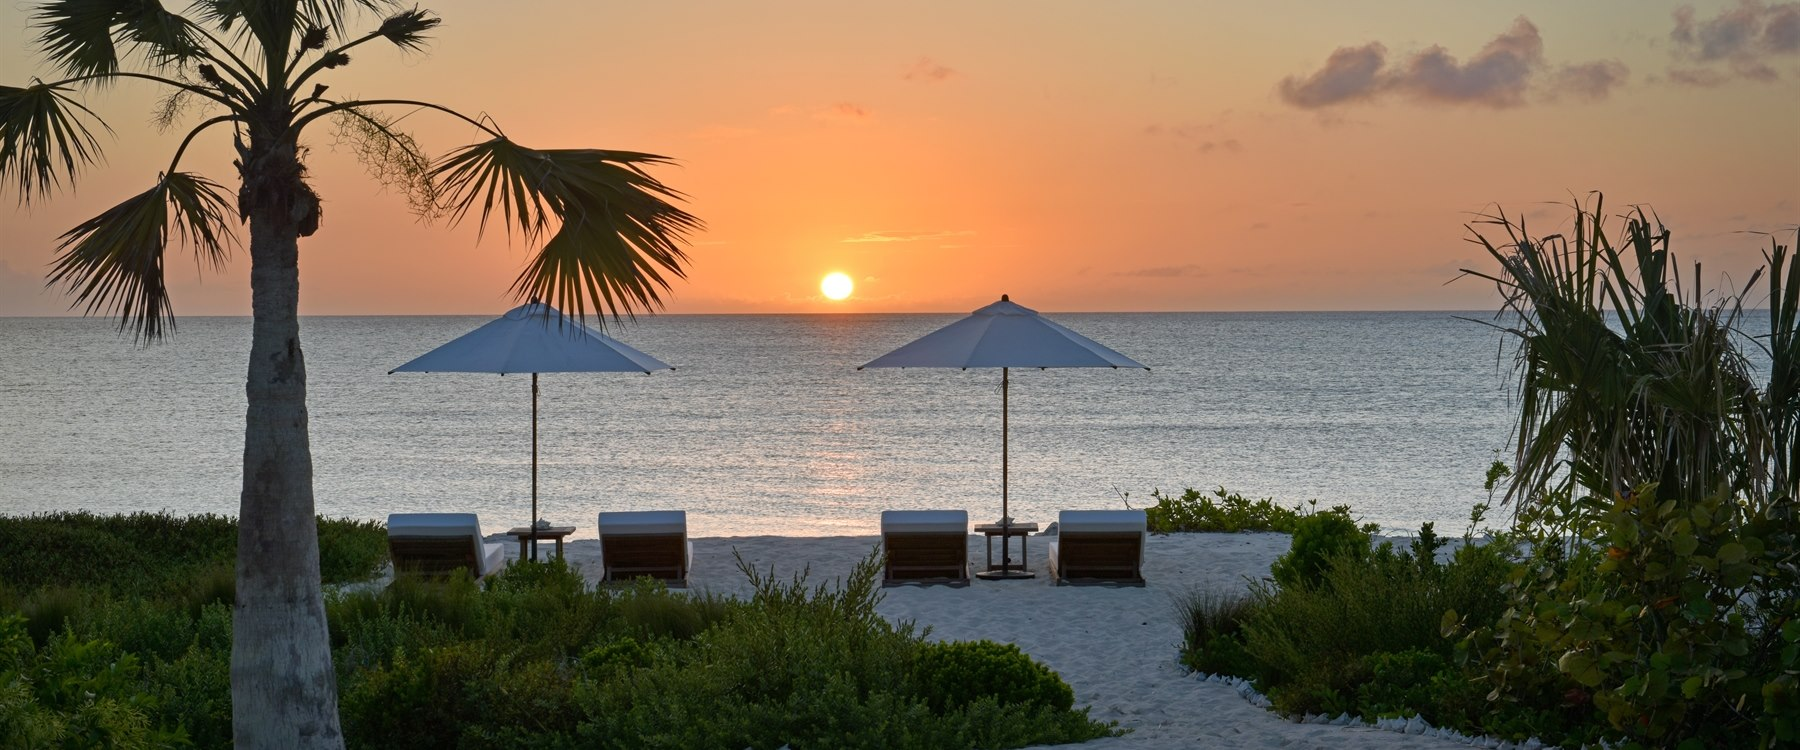 Pumpkin main house beach at sunset at COMO Parrot Cay, Turks and Caicos